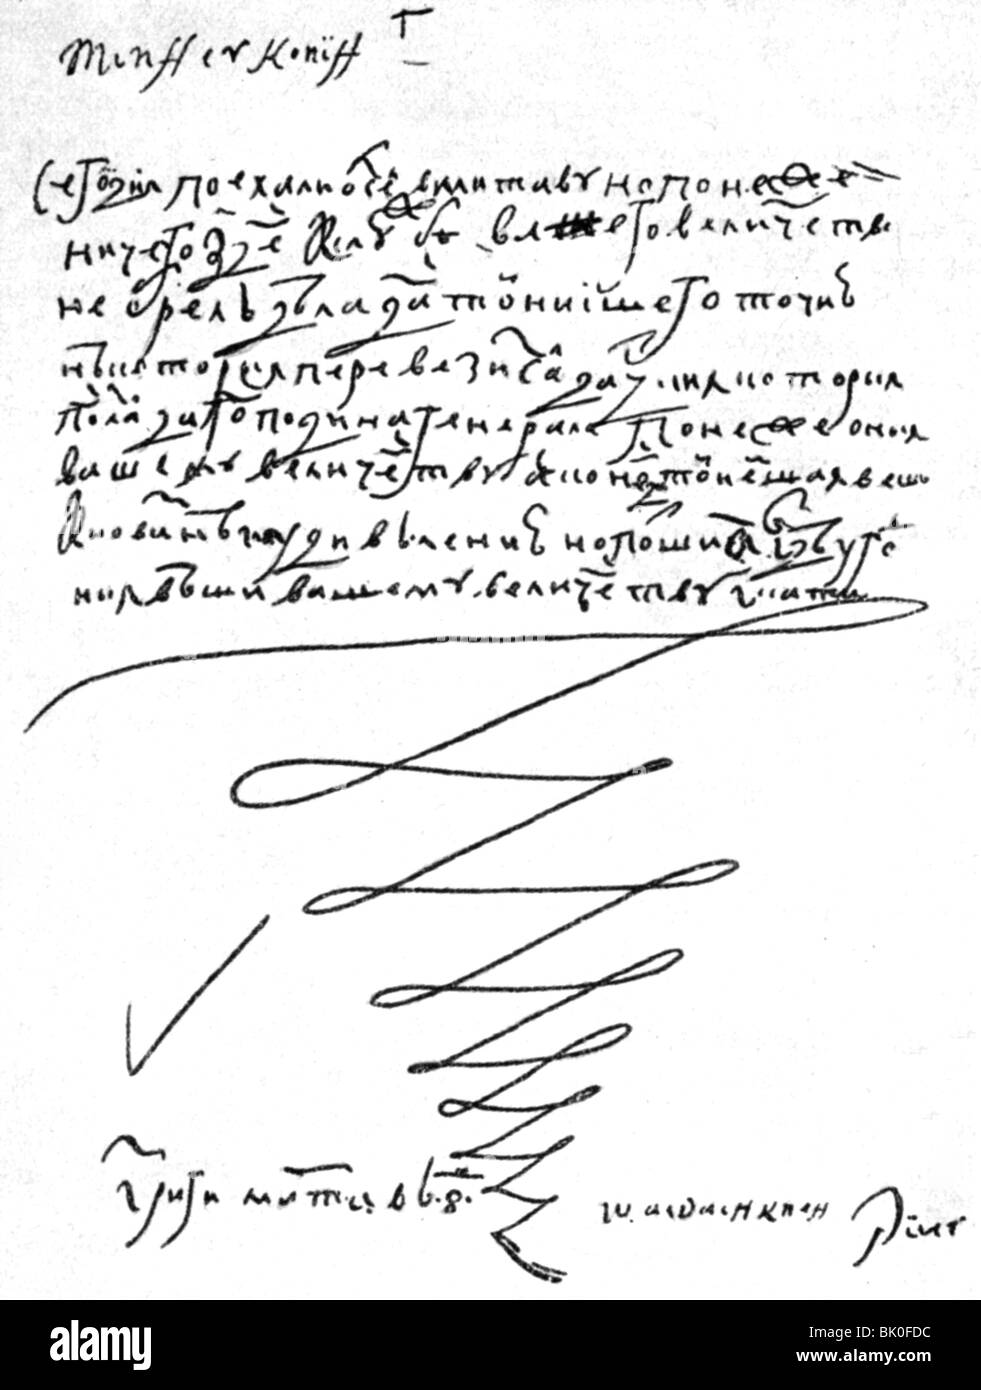 """Peter I Alexeyevich """"the Great"""", 9.6.1672 - 8.2.1725, Emperor of Russia 27.4.1682 - 8.2.1725, handwriting, letter to Prince Romodanovsky, 8.3.1697, , Stock Photo"""